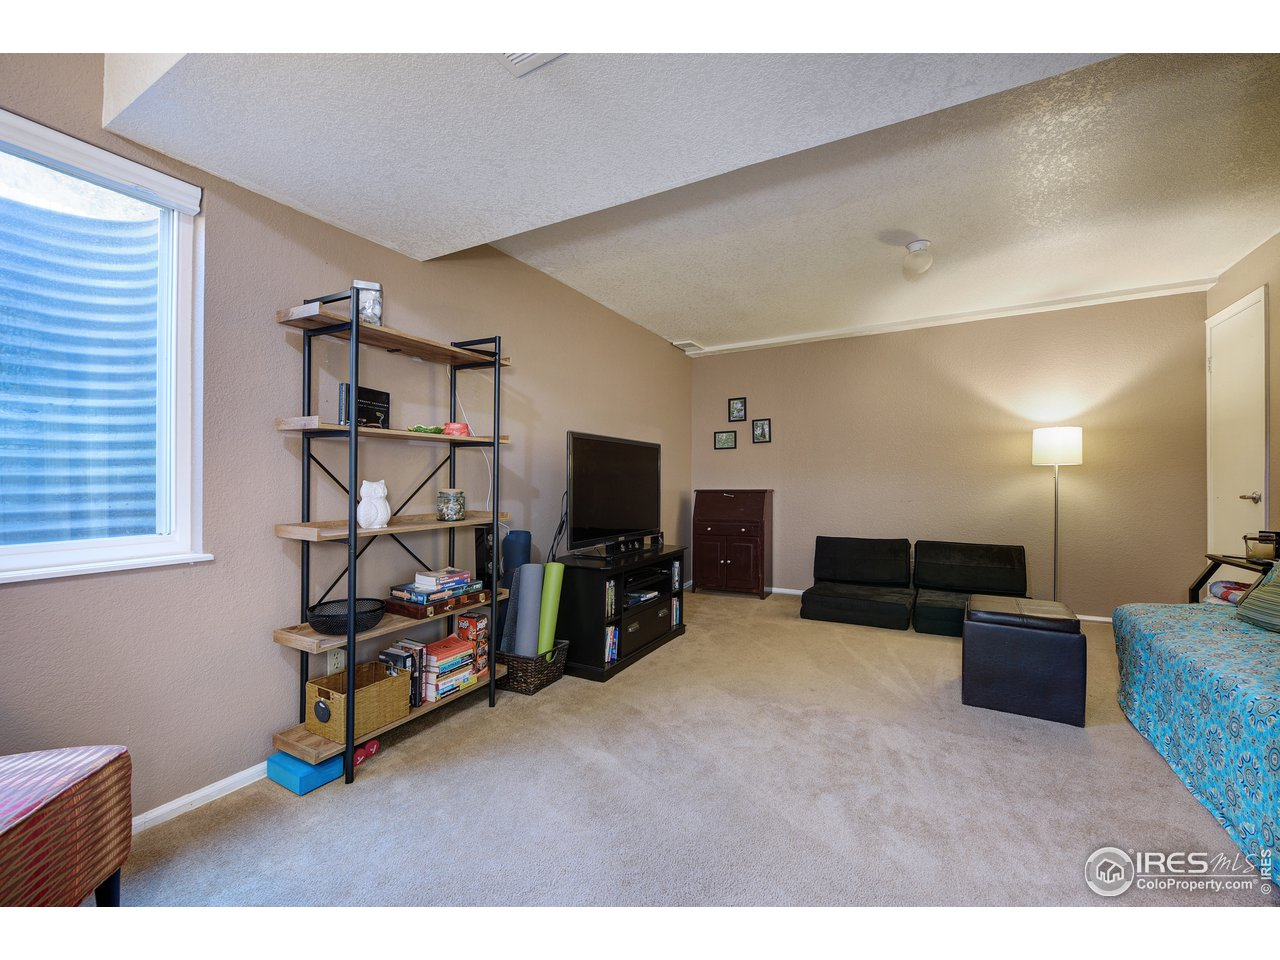 3rd bedroom or additional family/rec space